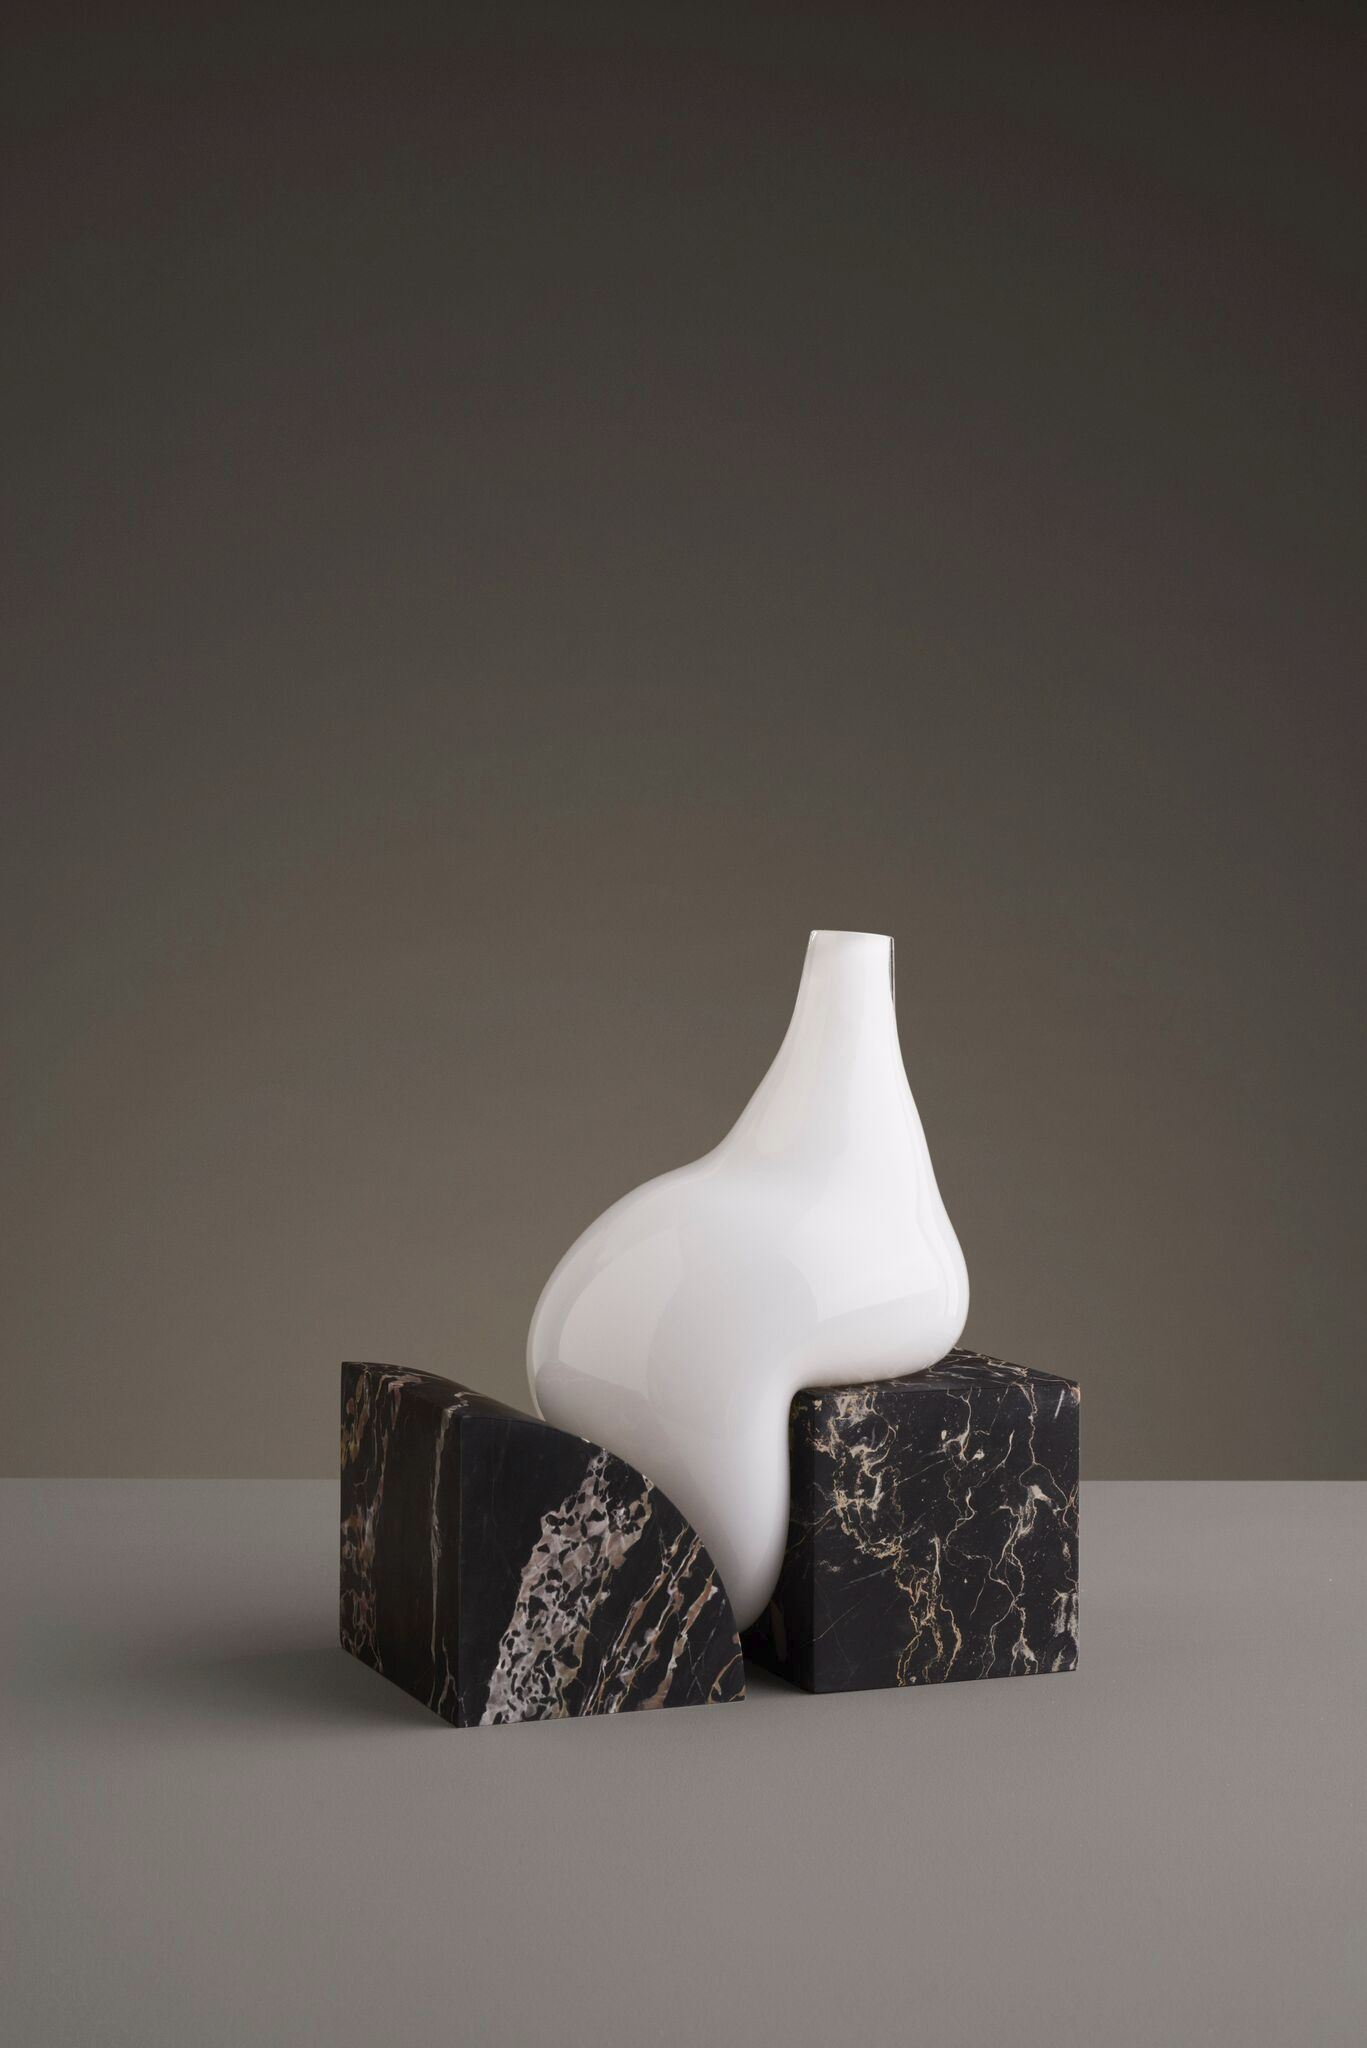 Indefinite Vase from Studio E.O